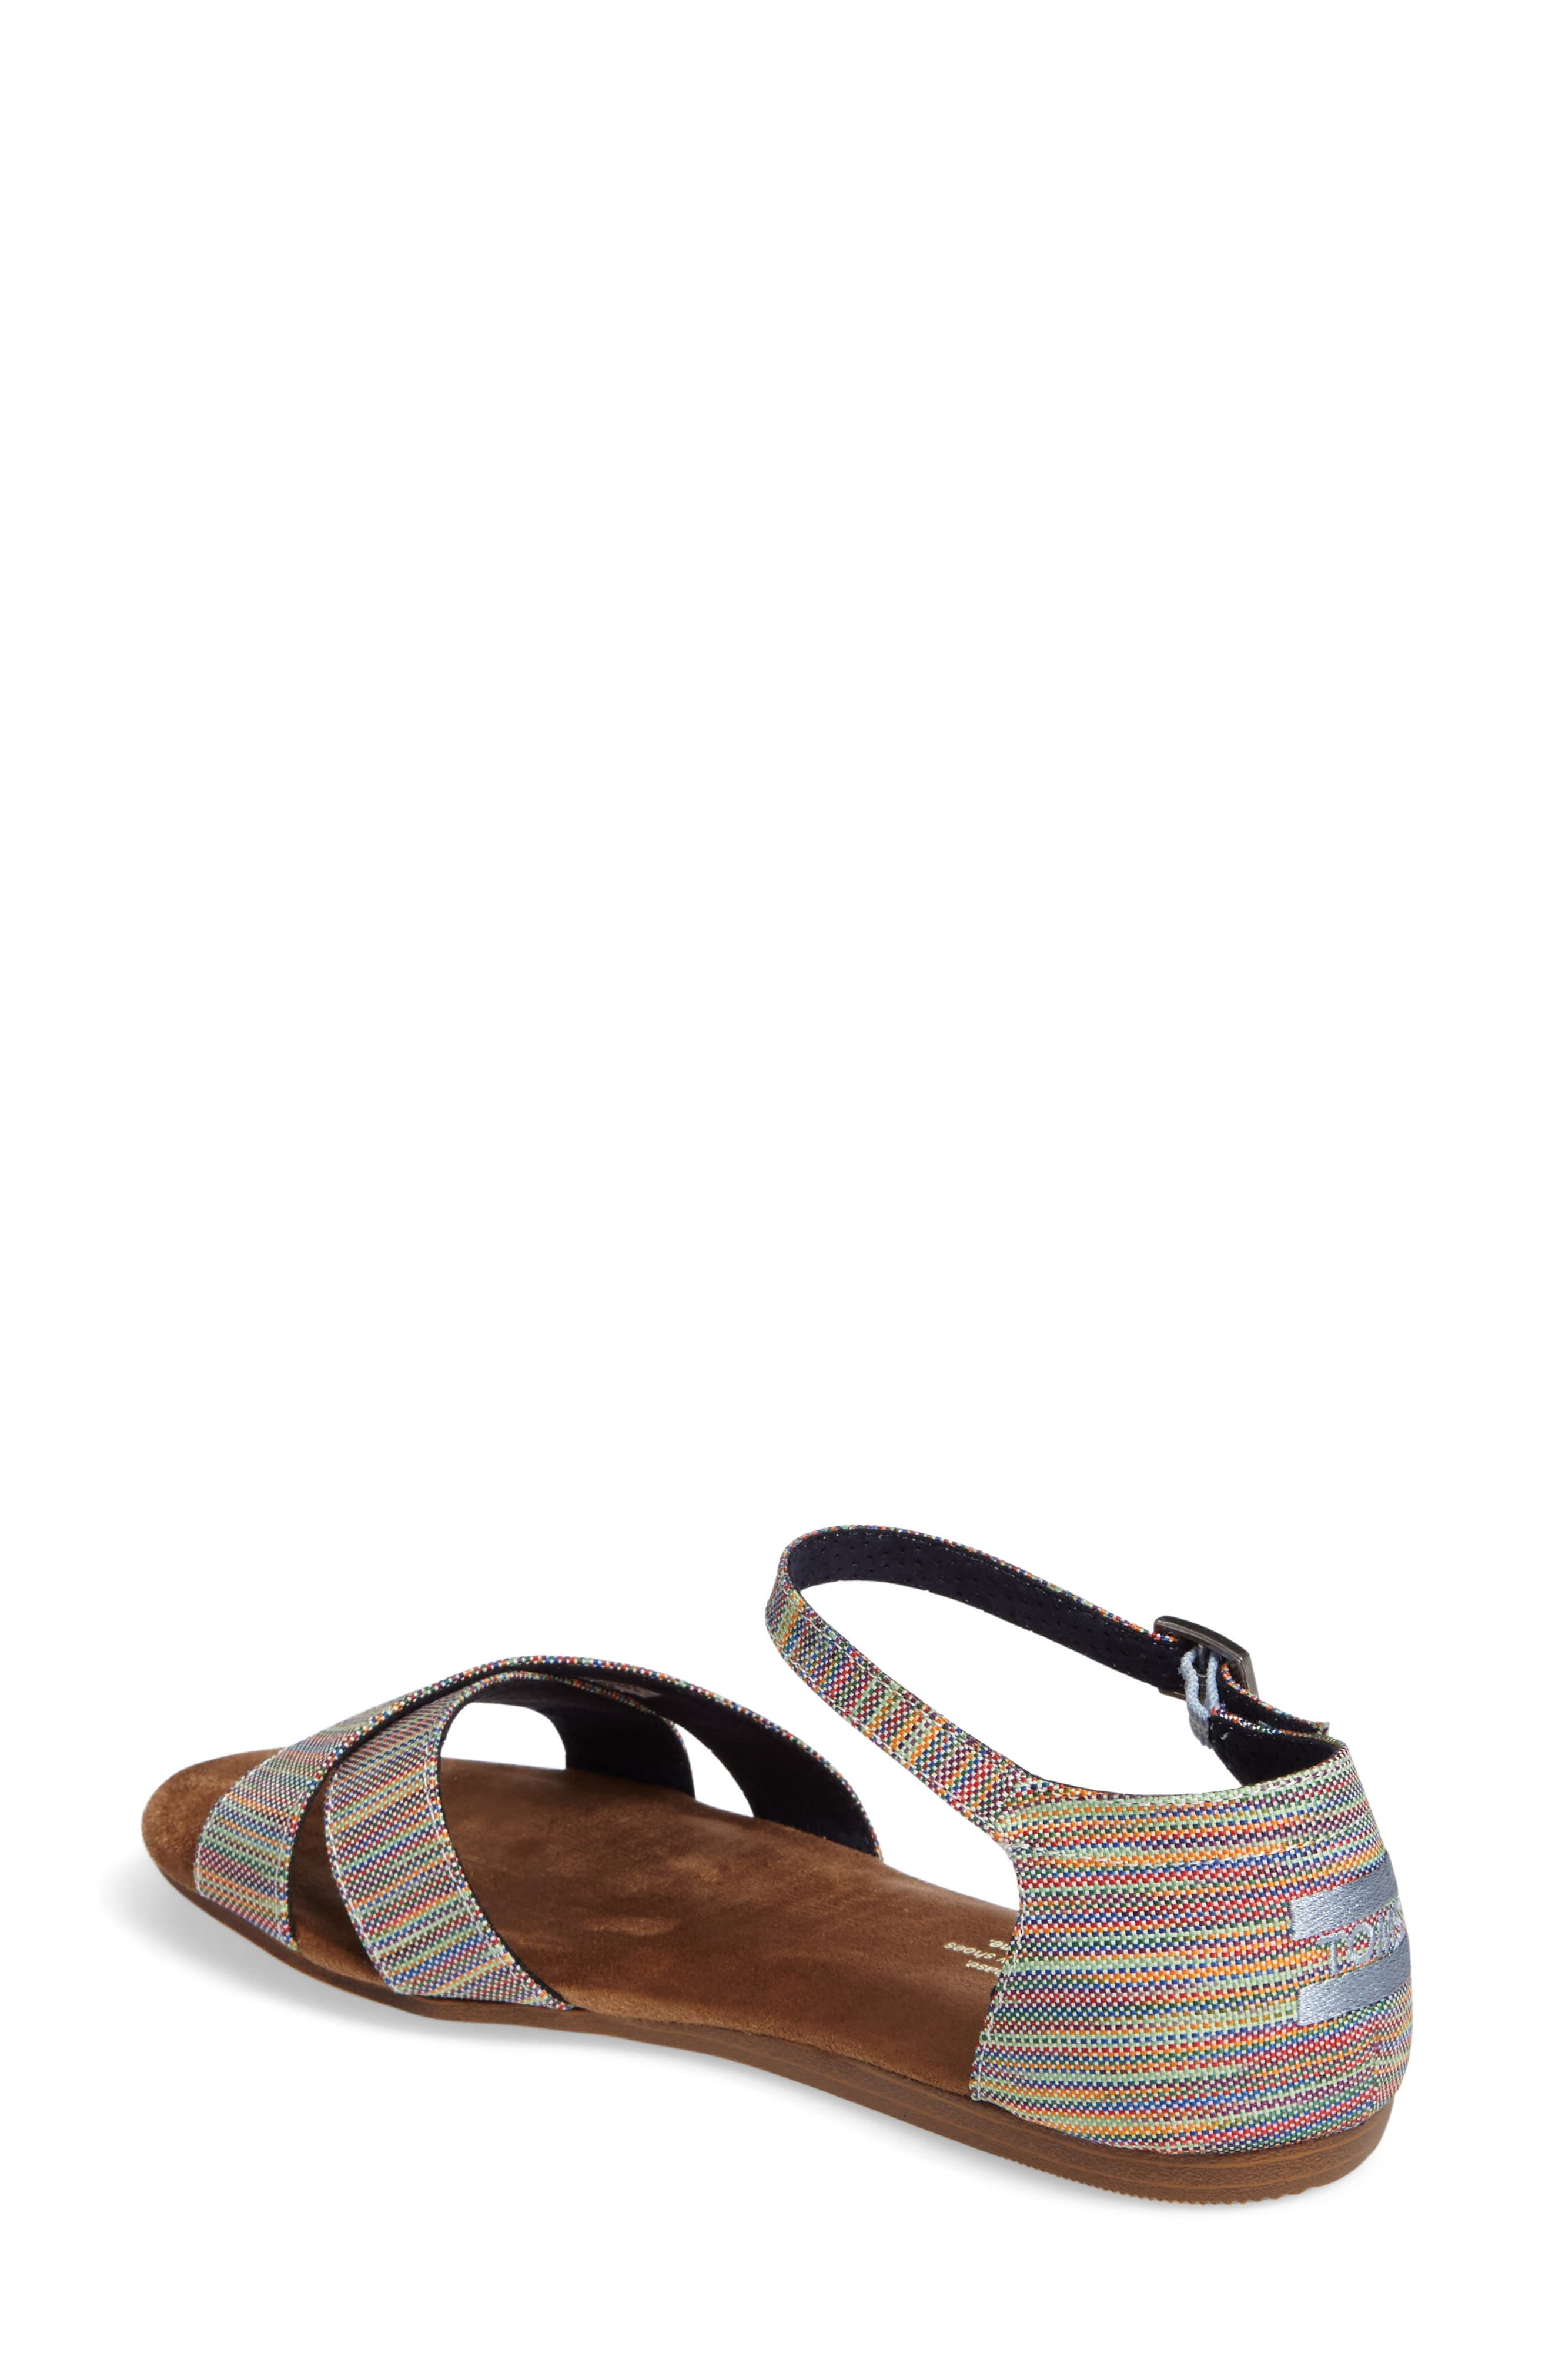 Correa Sandal,                             Alternate thumbnail 2, color,                             Blue Multi